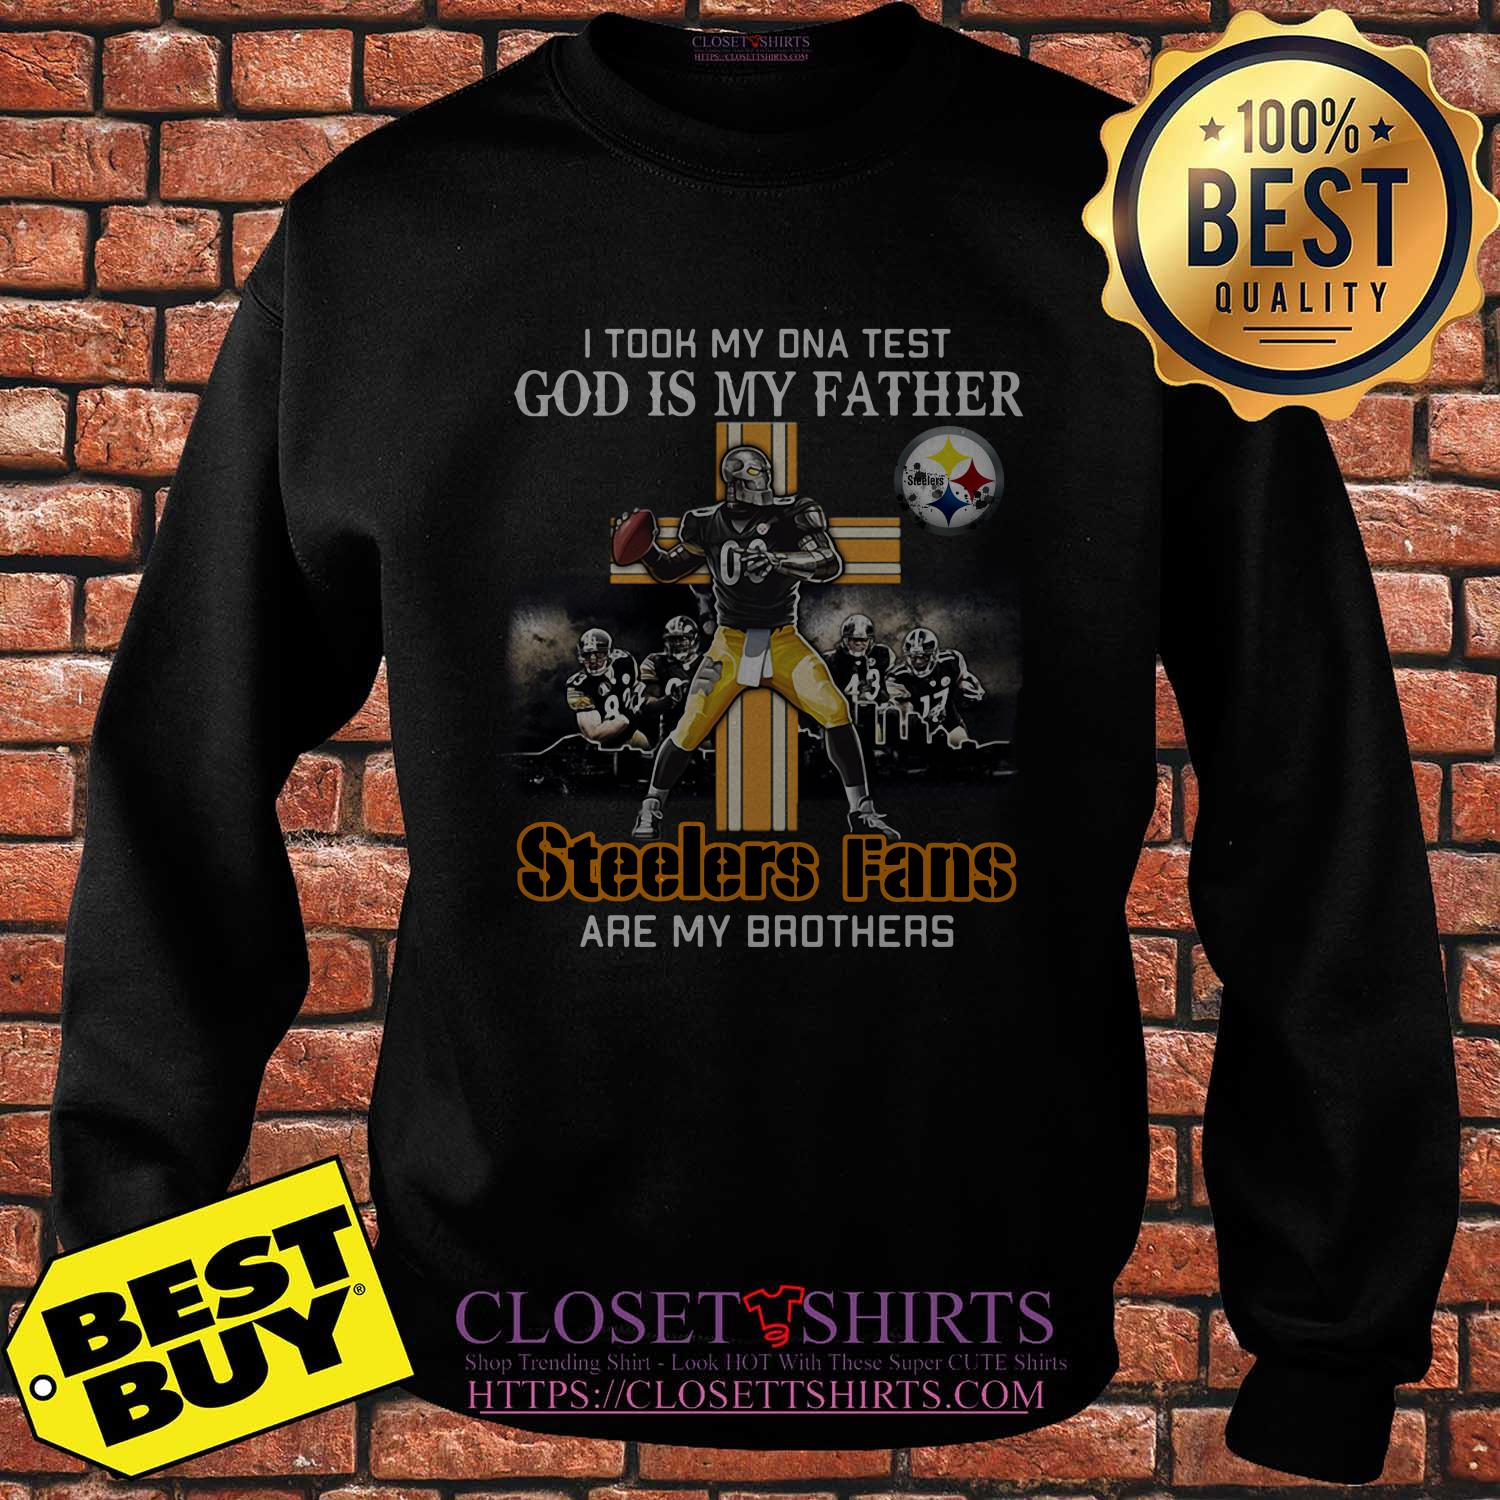 Took Dna Test God Father Pittsburgh Steelers Fans Brothers Sweatshirt